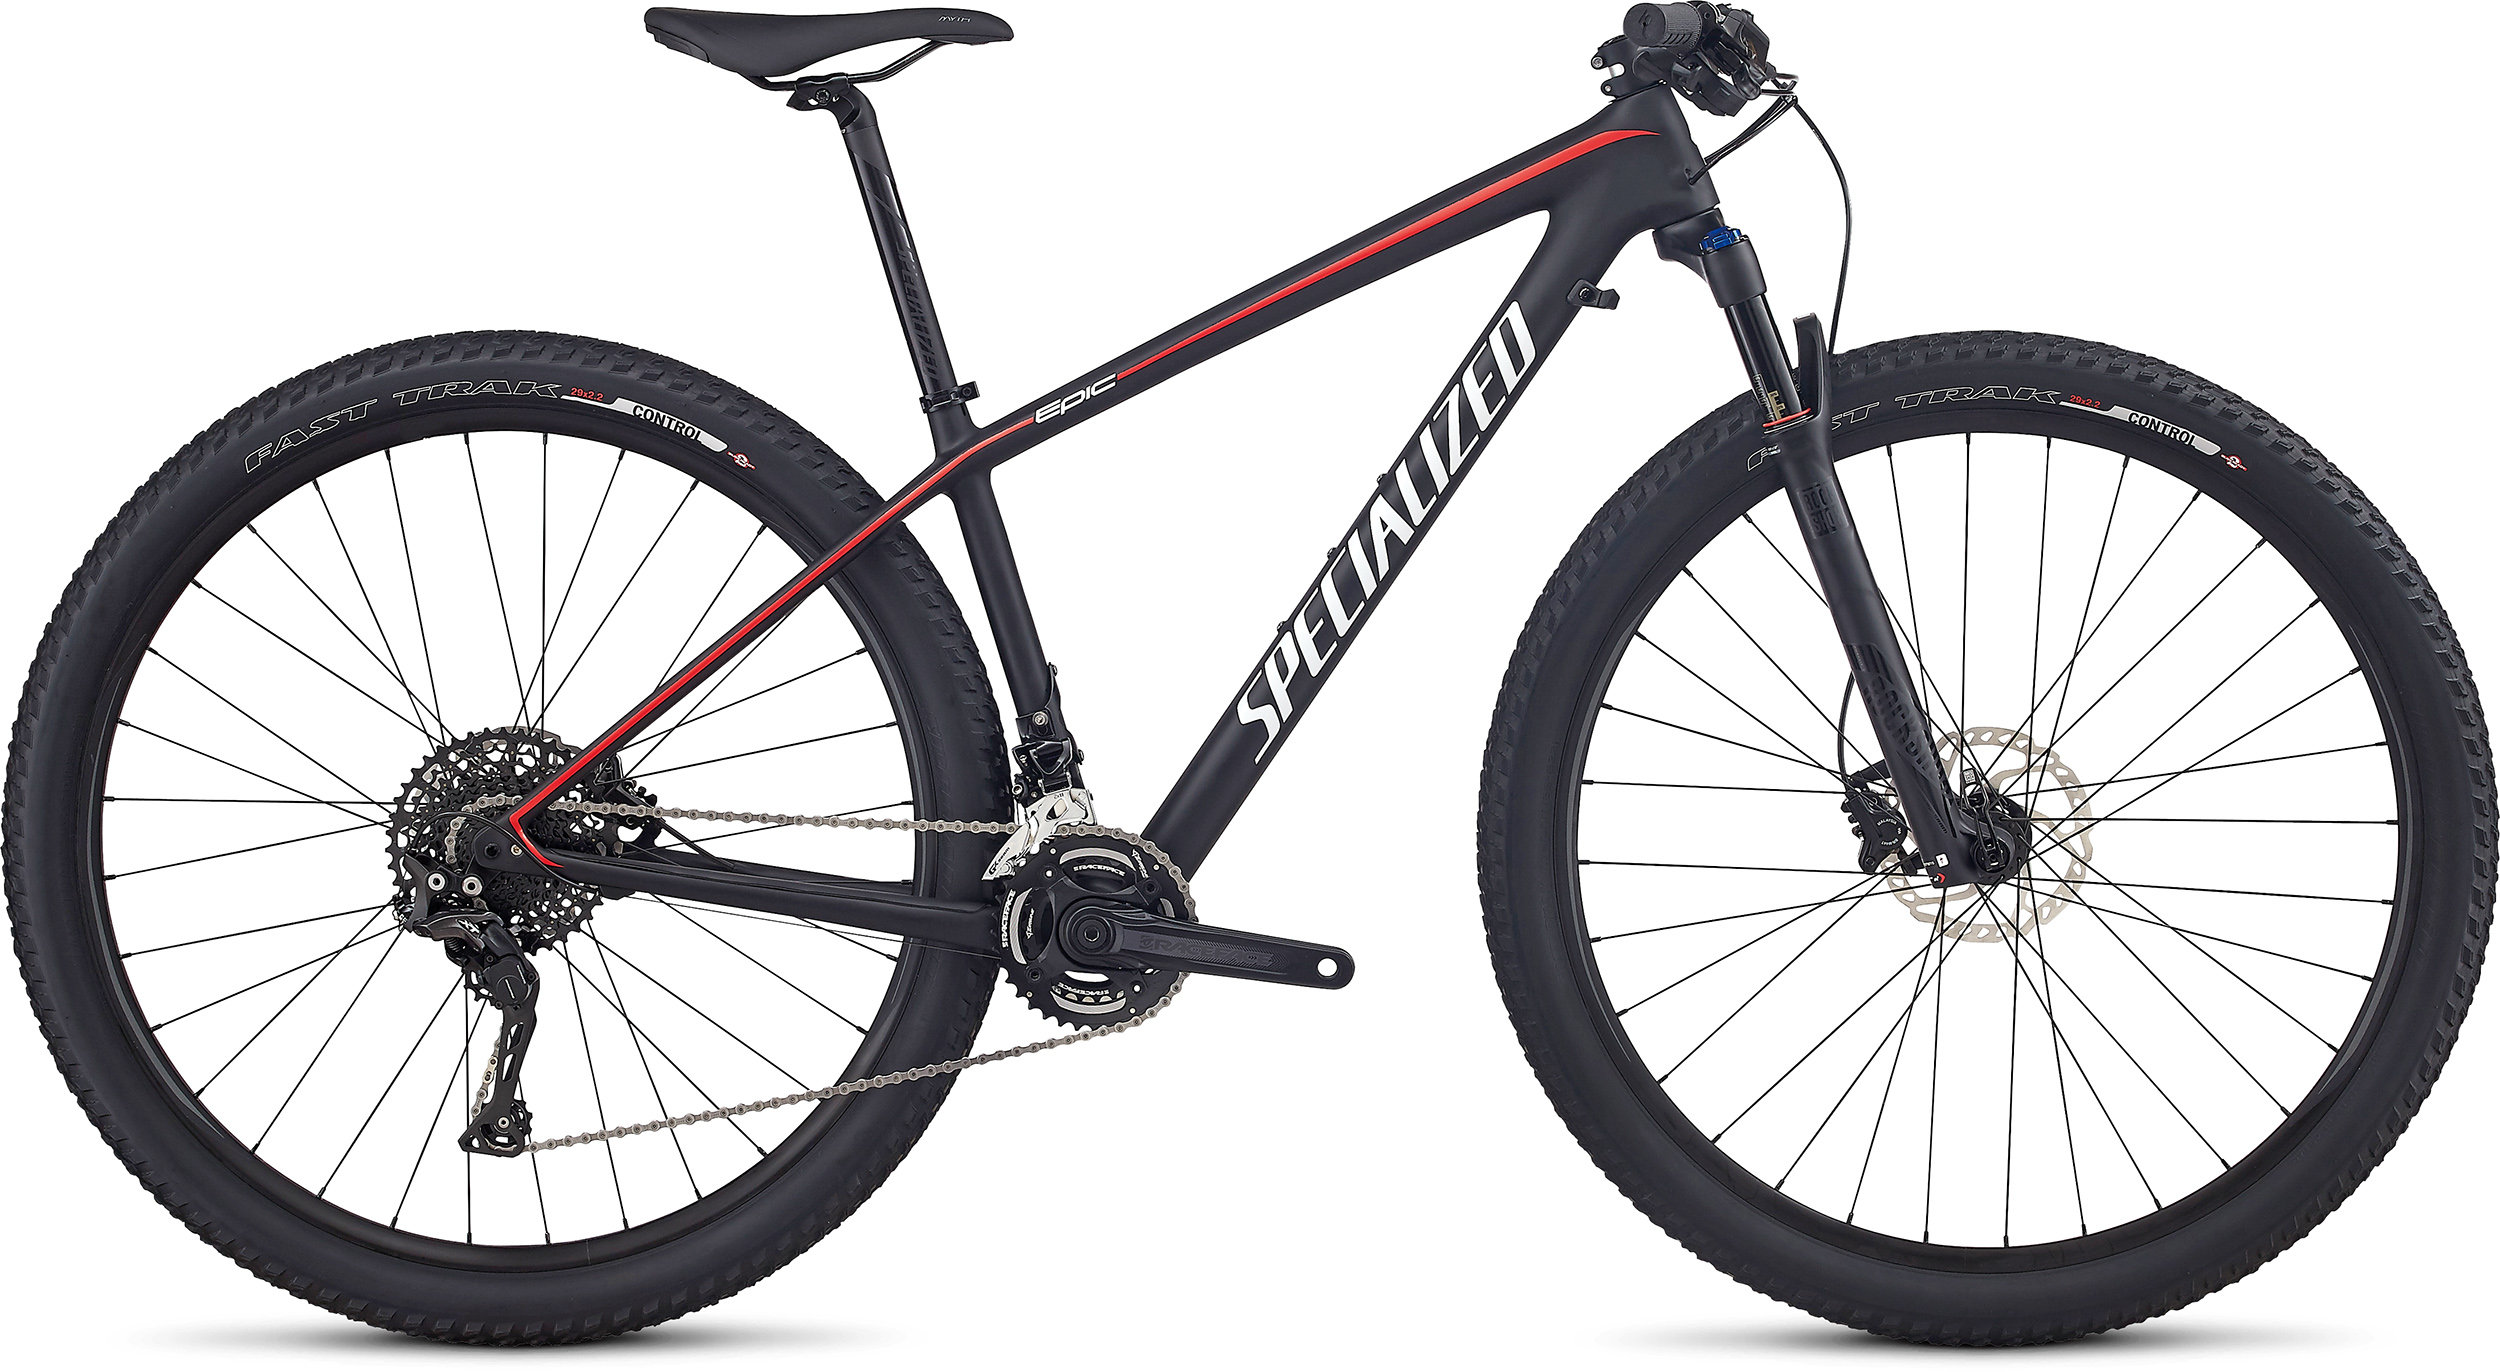 SPECIALIZED EPIC HT WMN COMP CARBON 29 TARBLK/NRDCRED/METWHTSIL XS - Bikedreams & Dustbikes